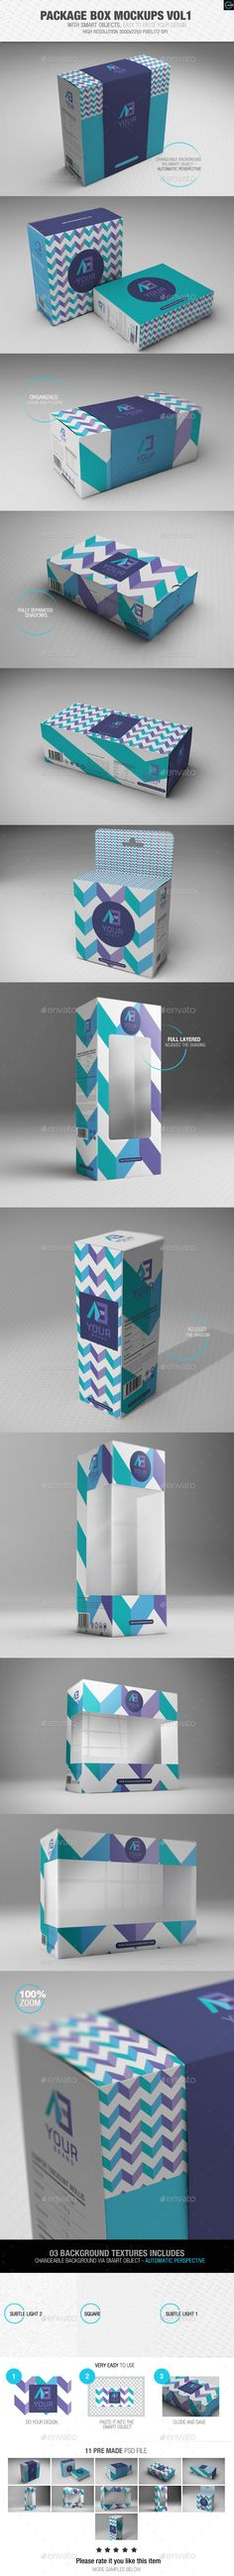 Package Box Mockups Vol1 However, the process of making a good packaging for a product is not easy. It has many requirements such as color, shape, pattern,… Consequently, it consumes much time and money. Therefore, today, we proudly present you a better way to solve your problem. Our packaging box mockups will help you visualize the real look and feel of a design on your merchandise.